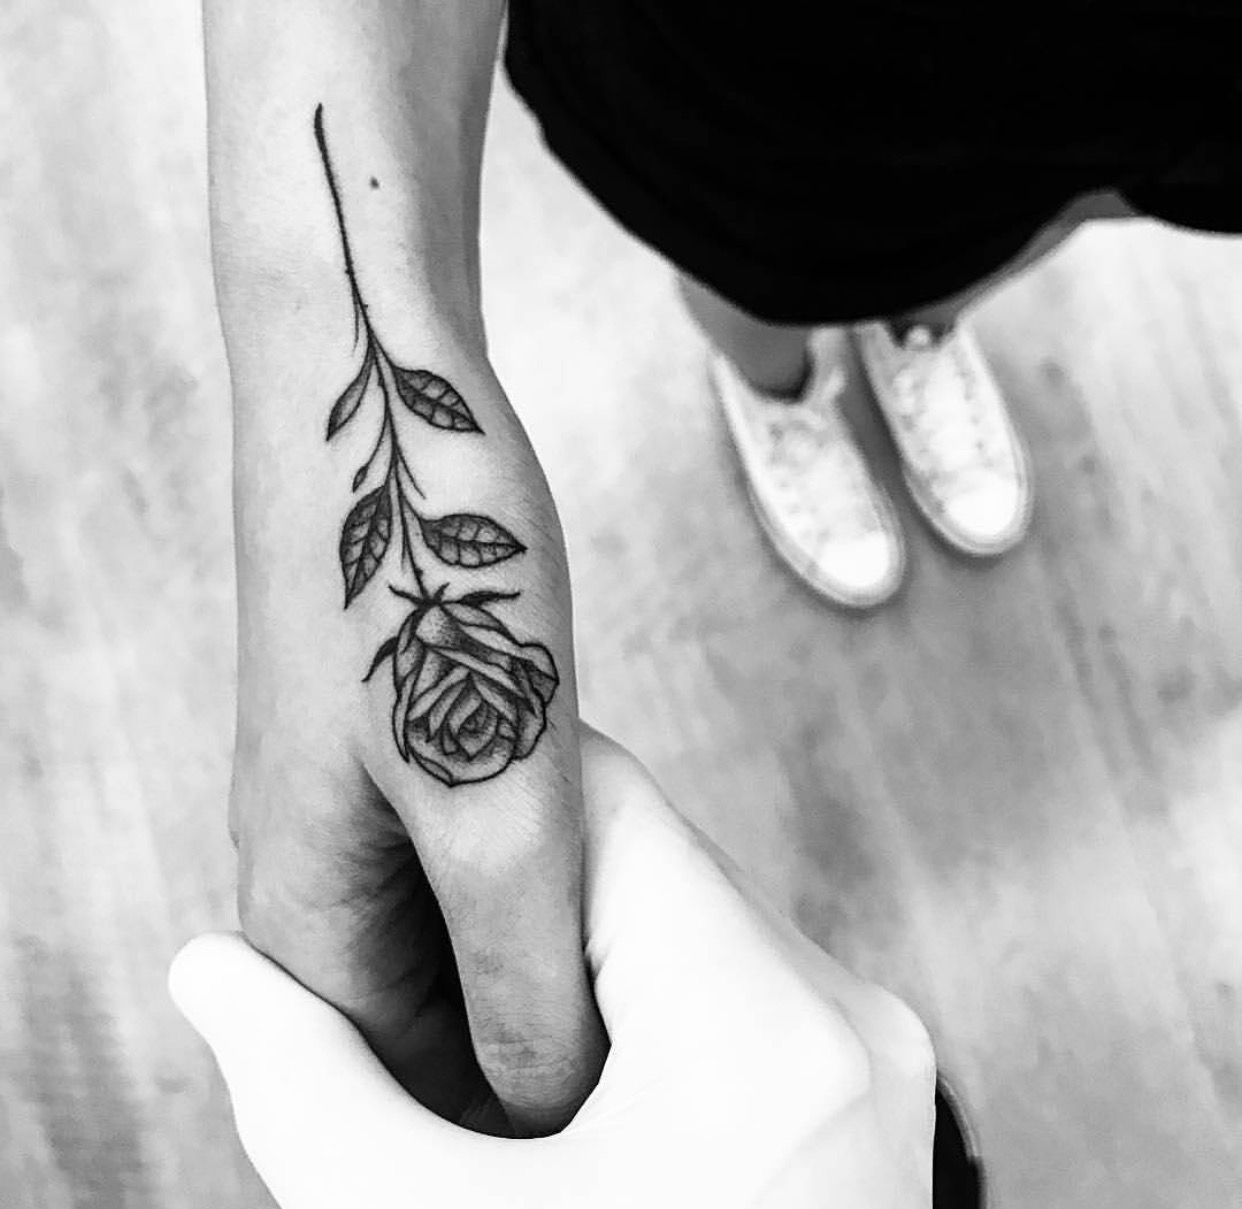 Pin by Emily Bond on Tattoos Hand tattoos, Tattoos for